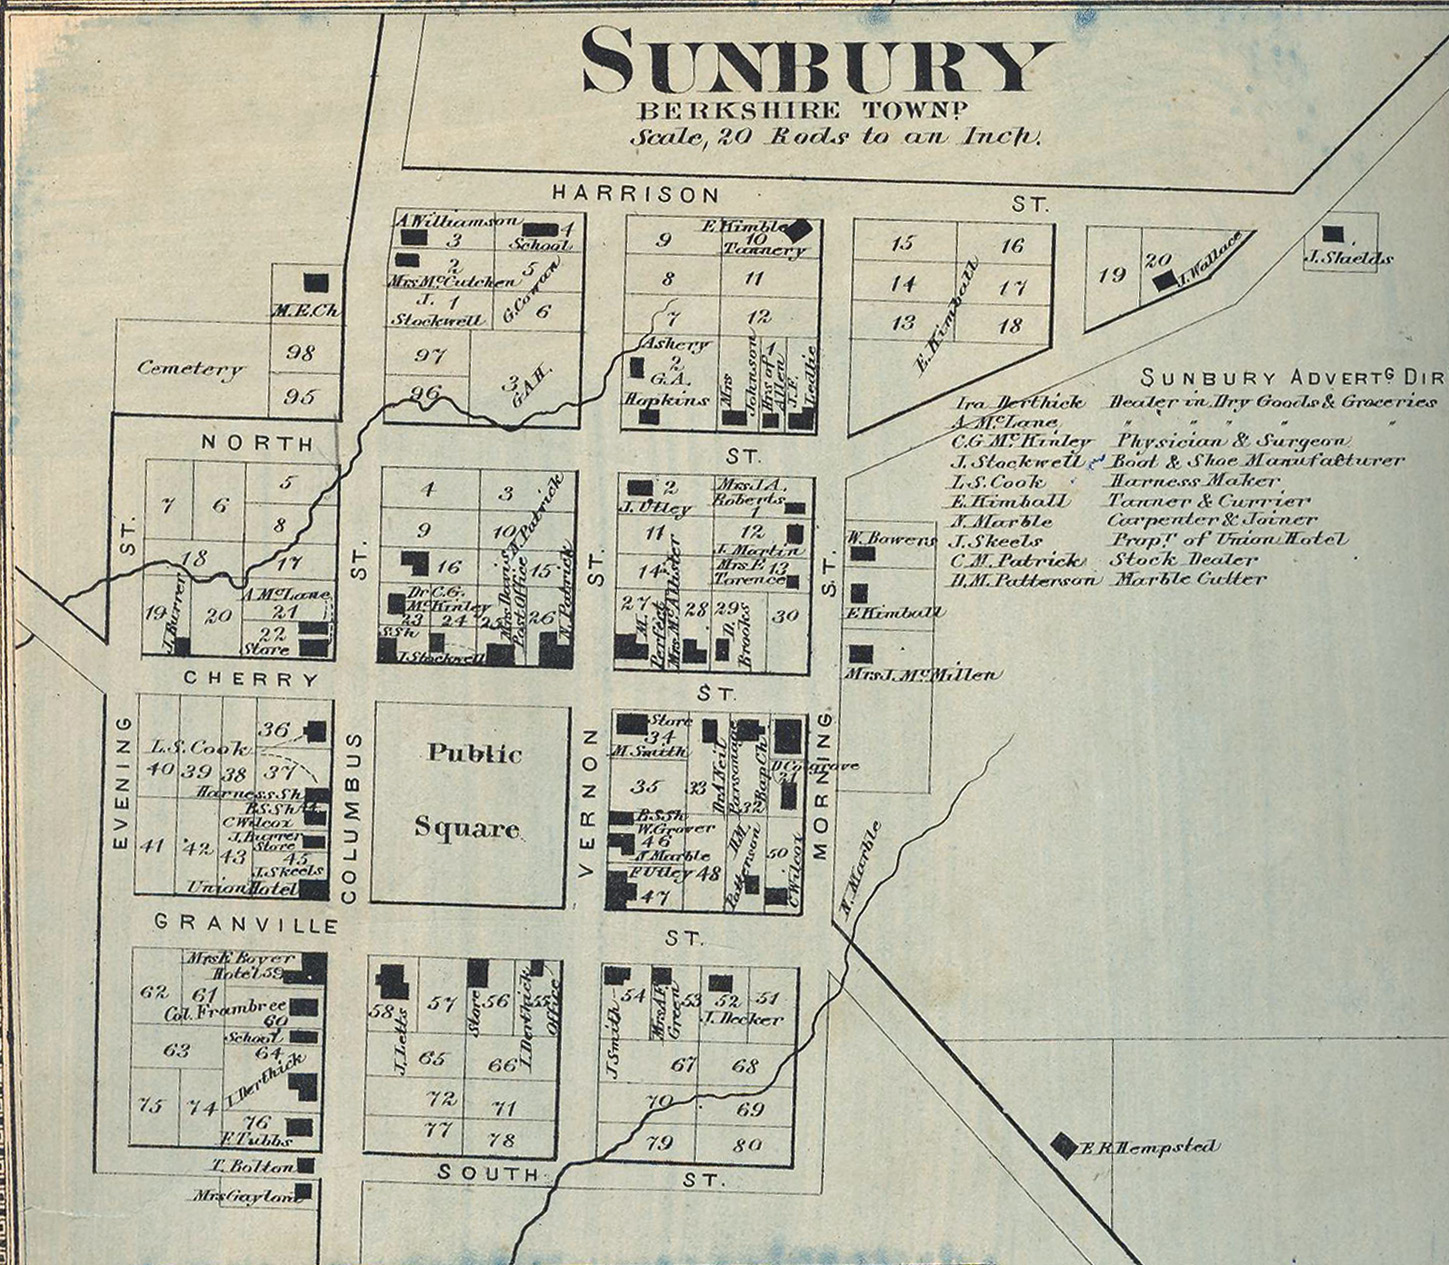 Return To Local History Index